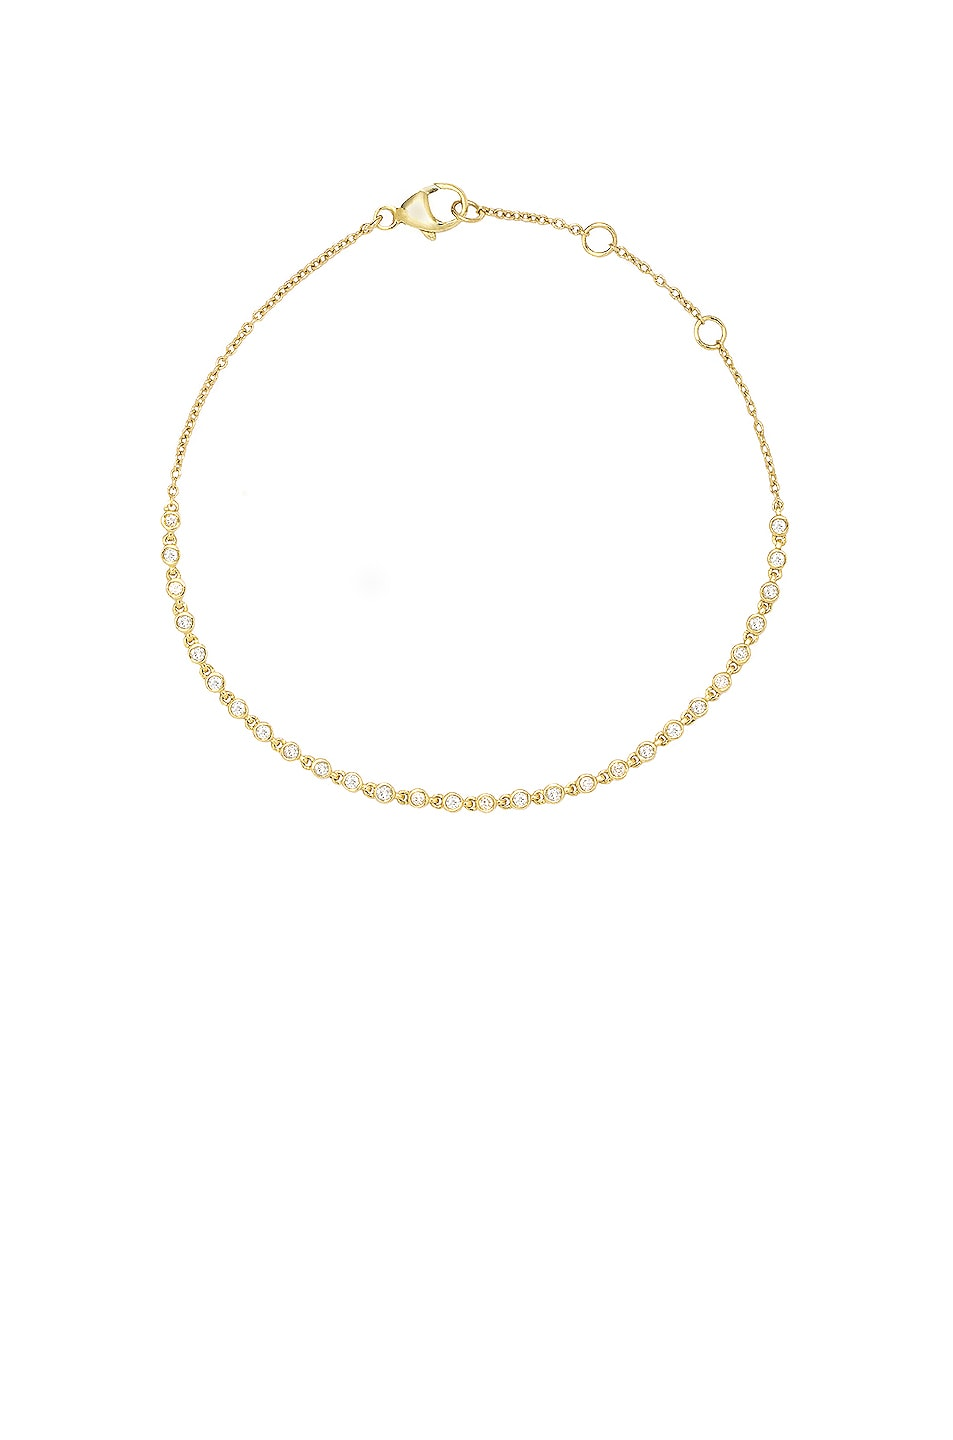 Image 1 of STONE AND STRAND Dainty Rally Tennis Bracelet in Gold & Diamond